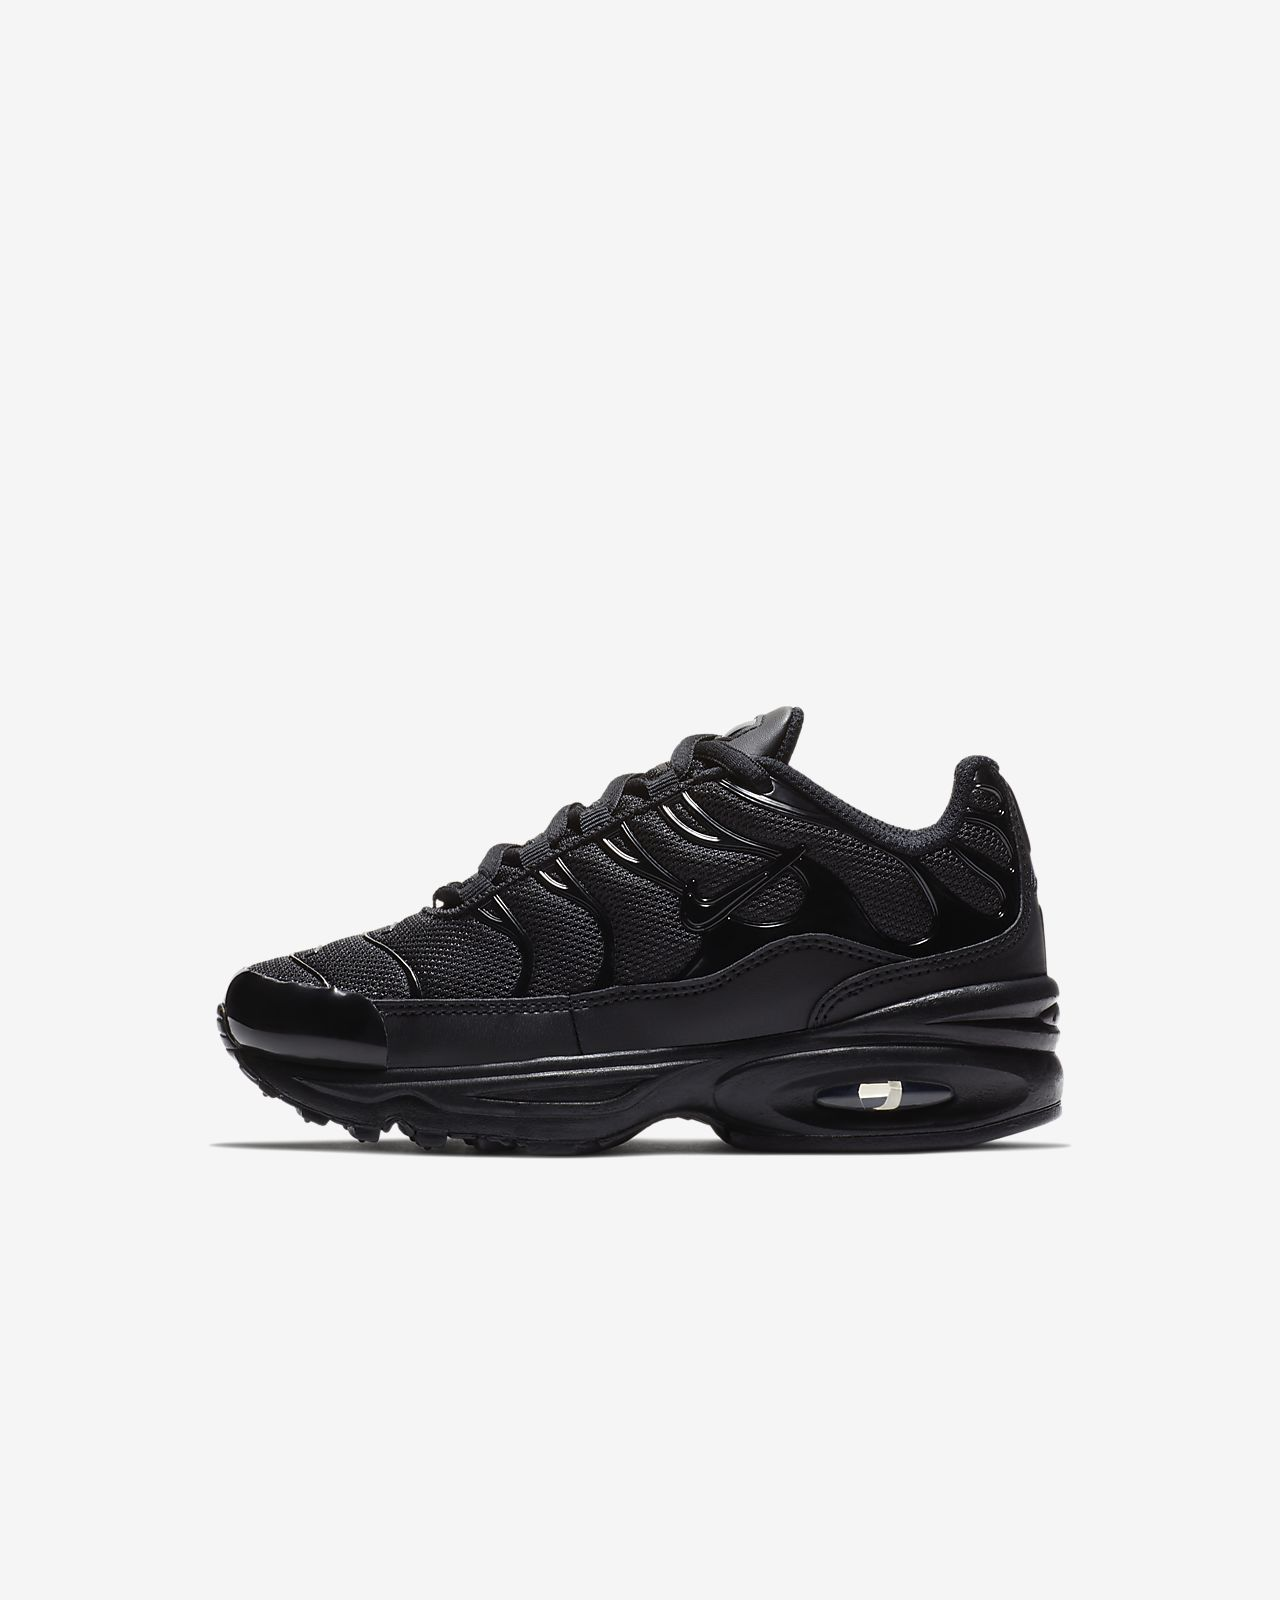 buy online ac68e 0b2bd ... Sko Nike Air Max Plus för små barn